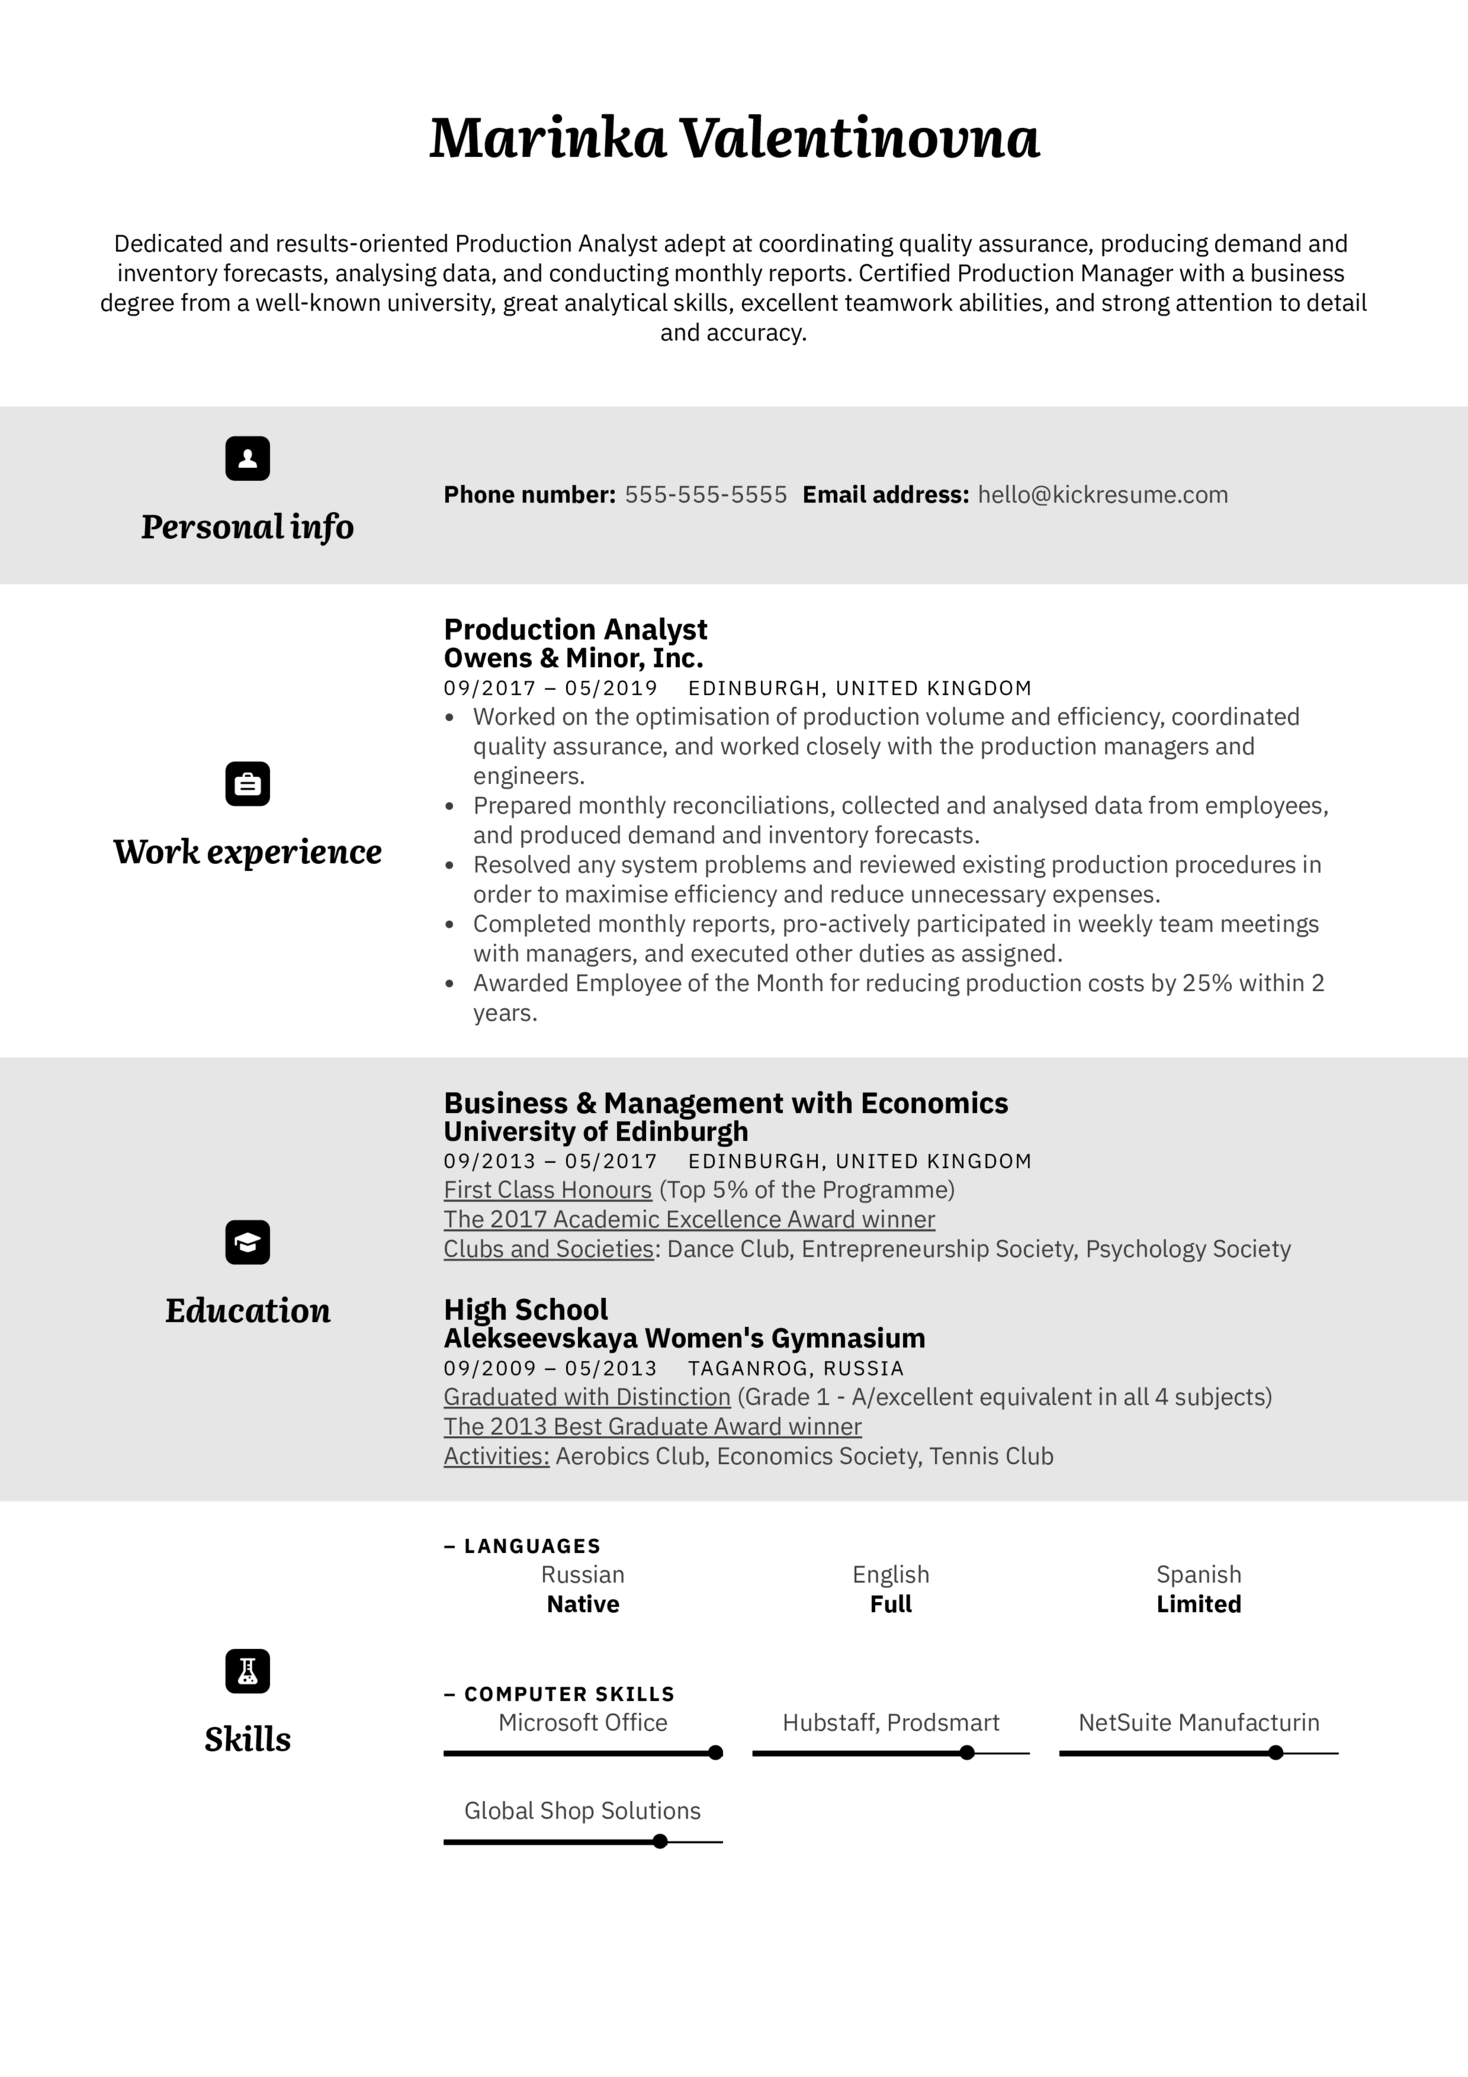 Production Analyst Resume Example (parte 1)